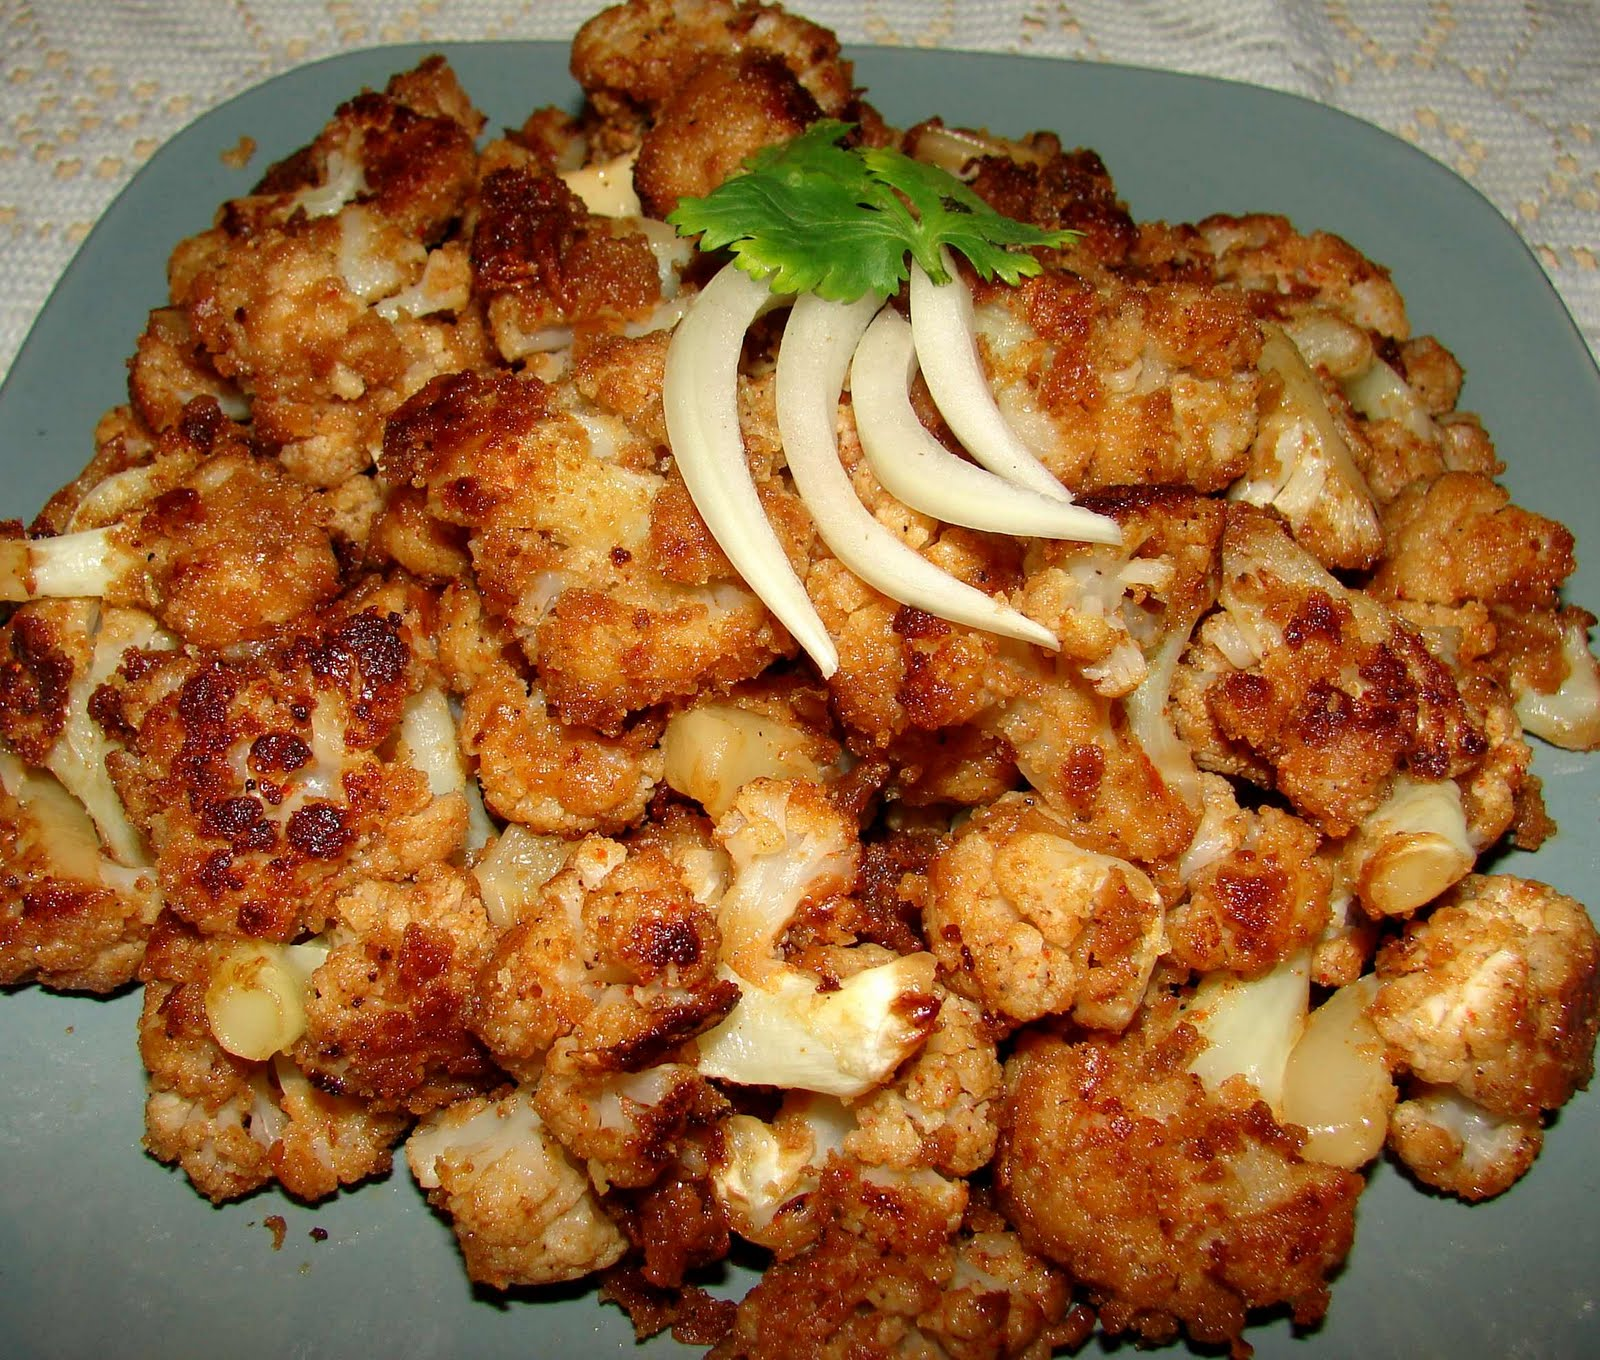 Kitchen Corner-Try It: Cauliflower Stir Fry